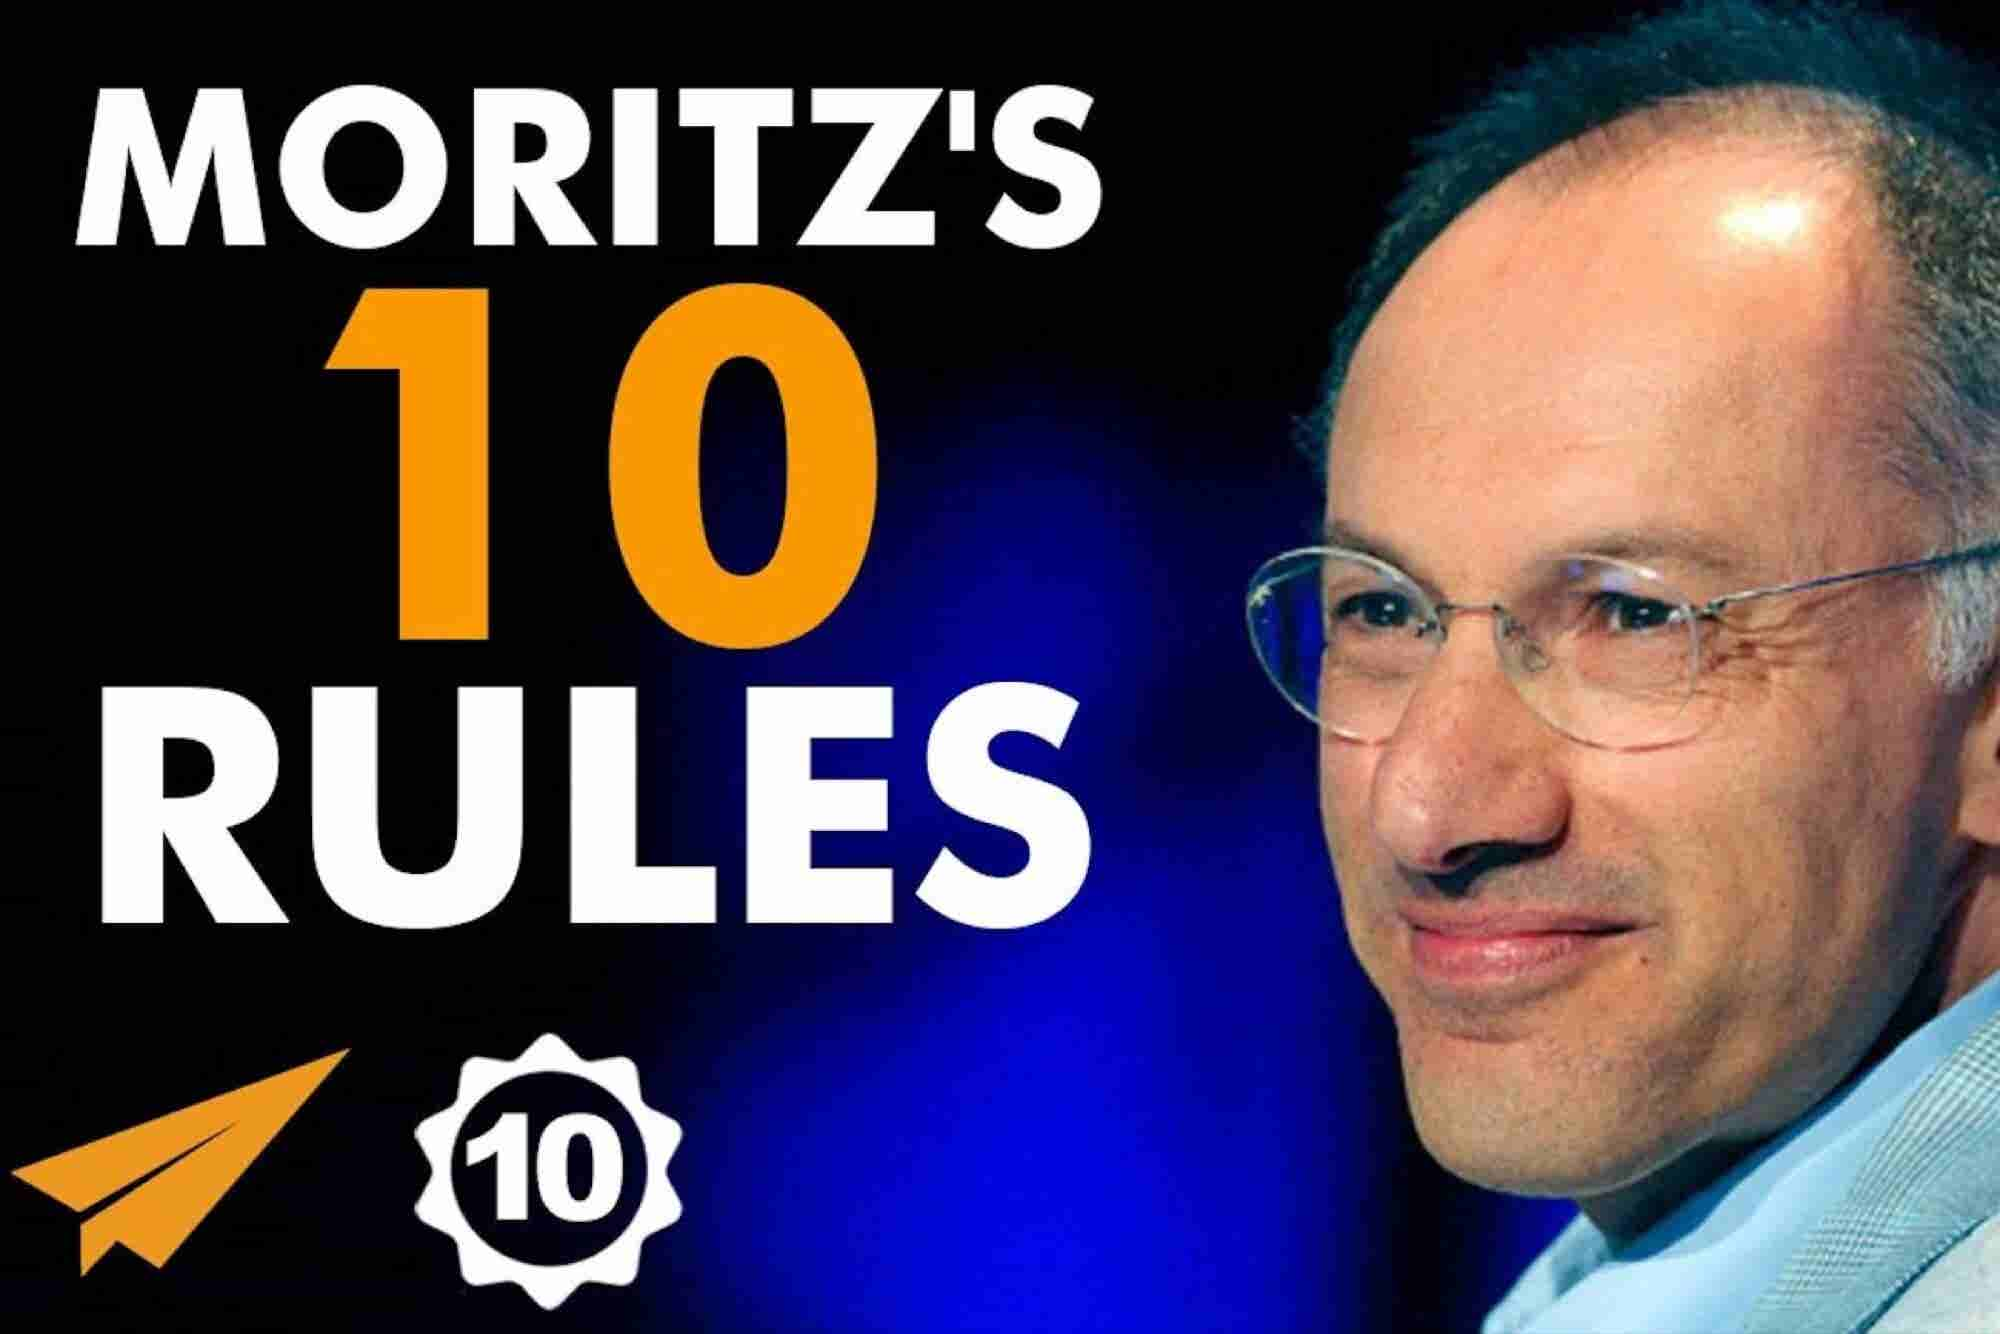 Reporter-Turned-Billionaire VC Michael Moritz Shares His Top 10 Rules For Success